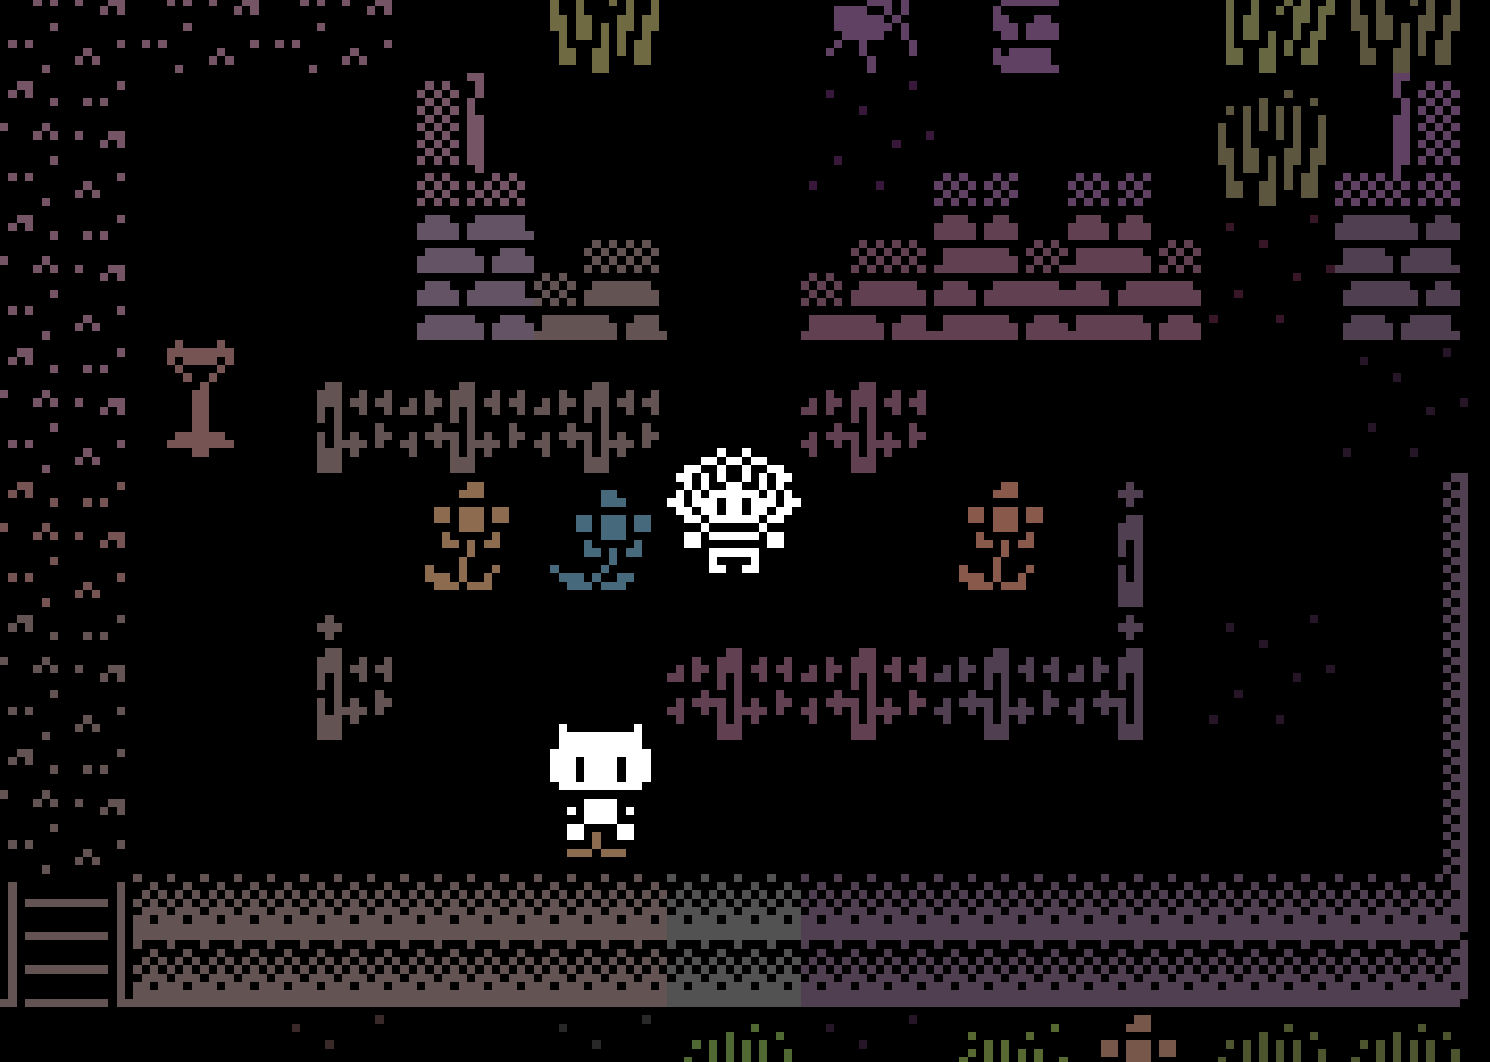 Screenshot from Familiars, a game by Nigel Nelson